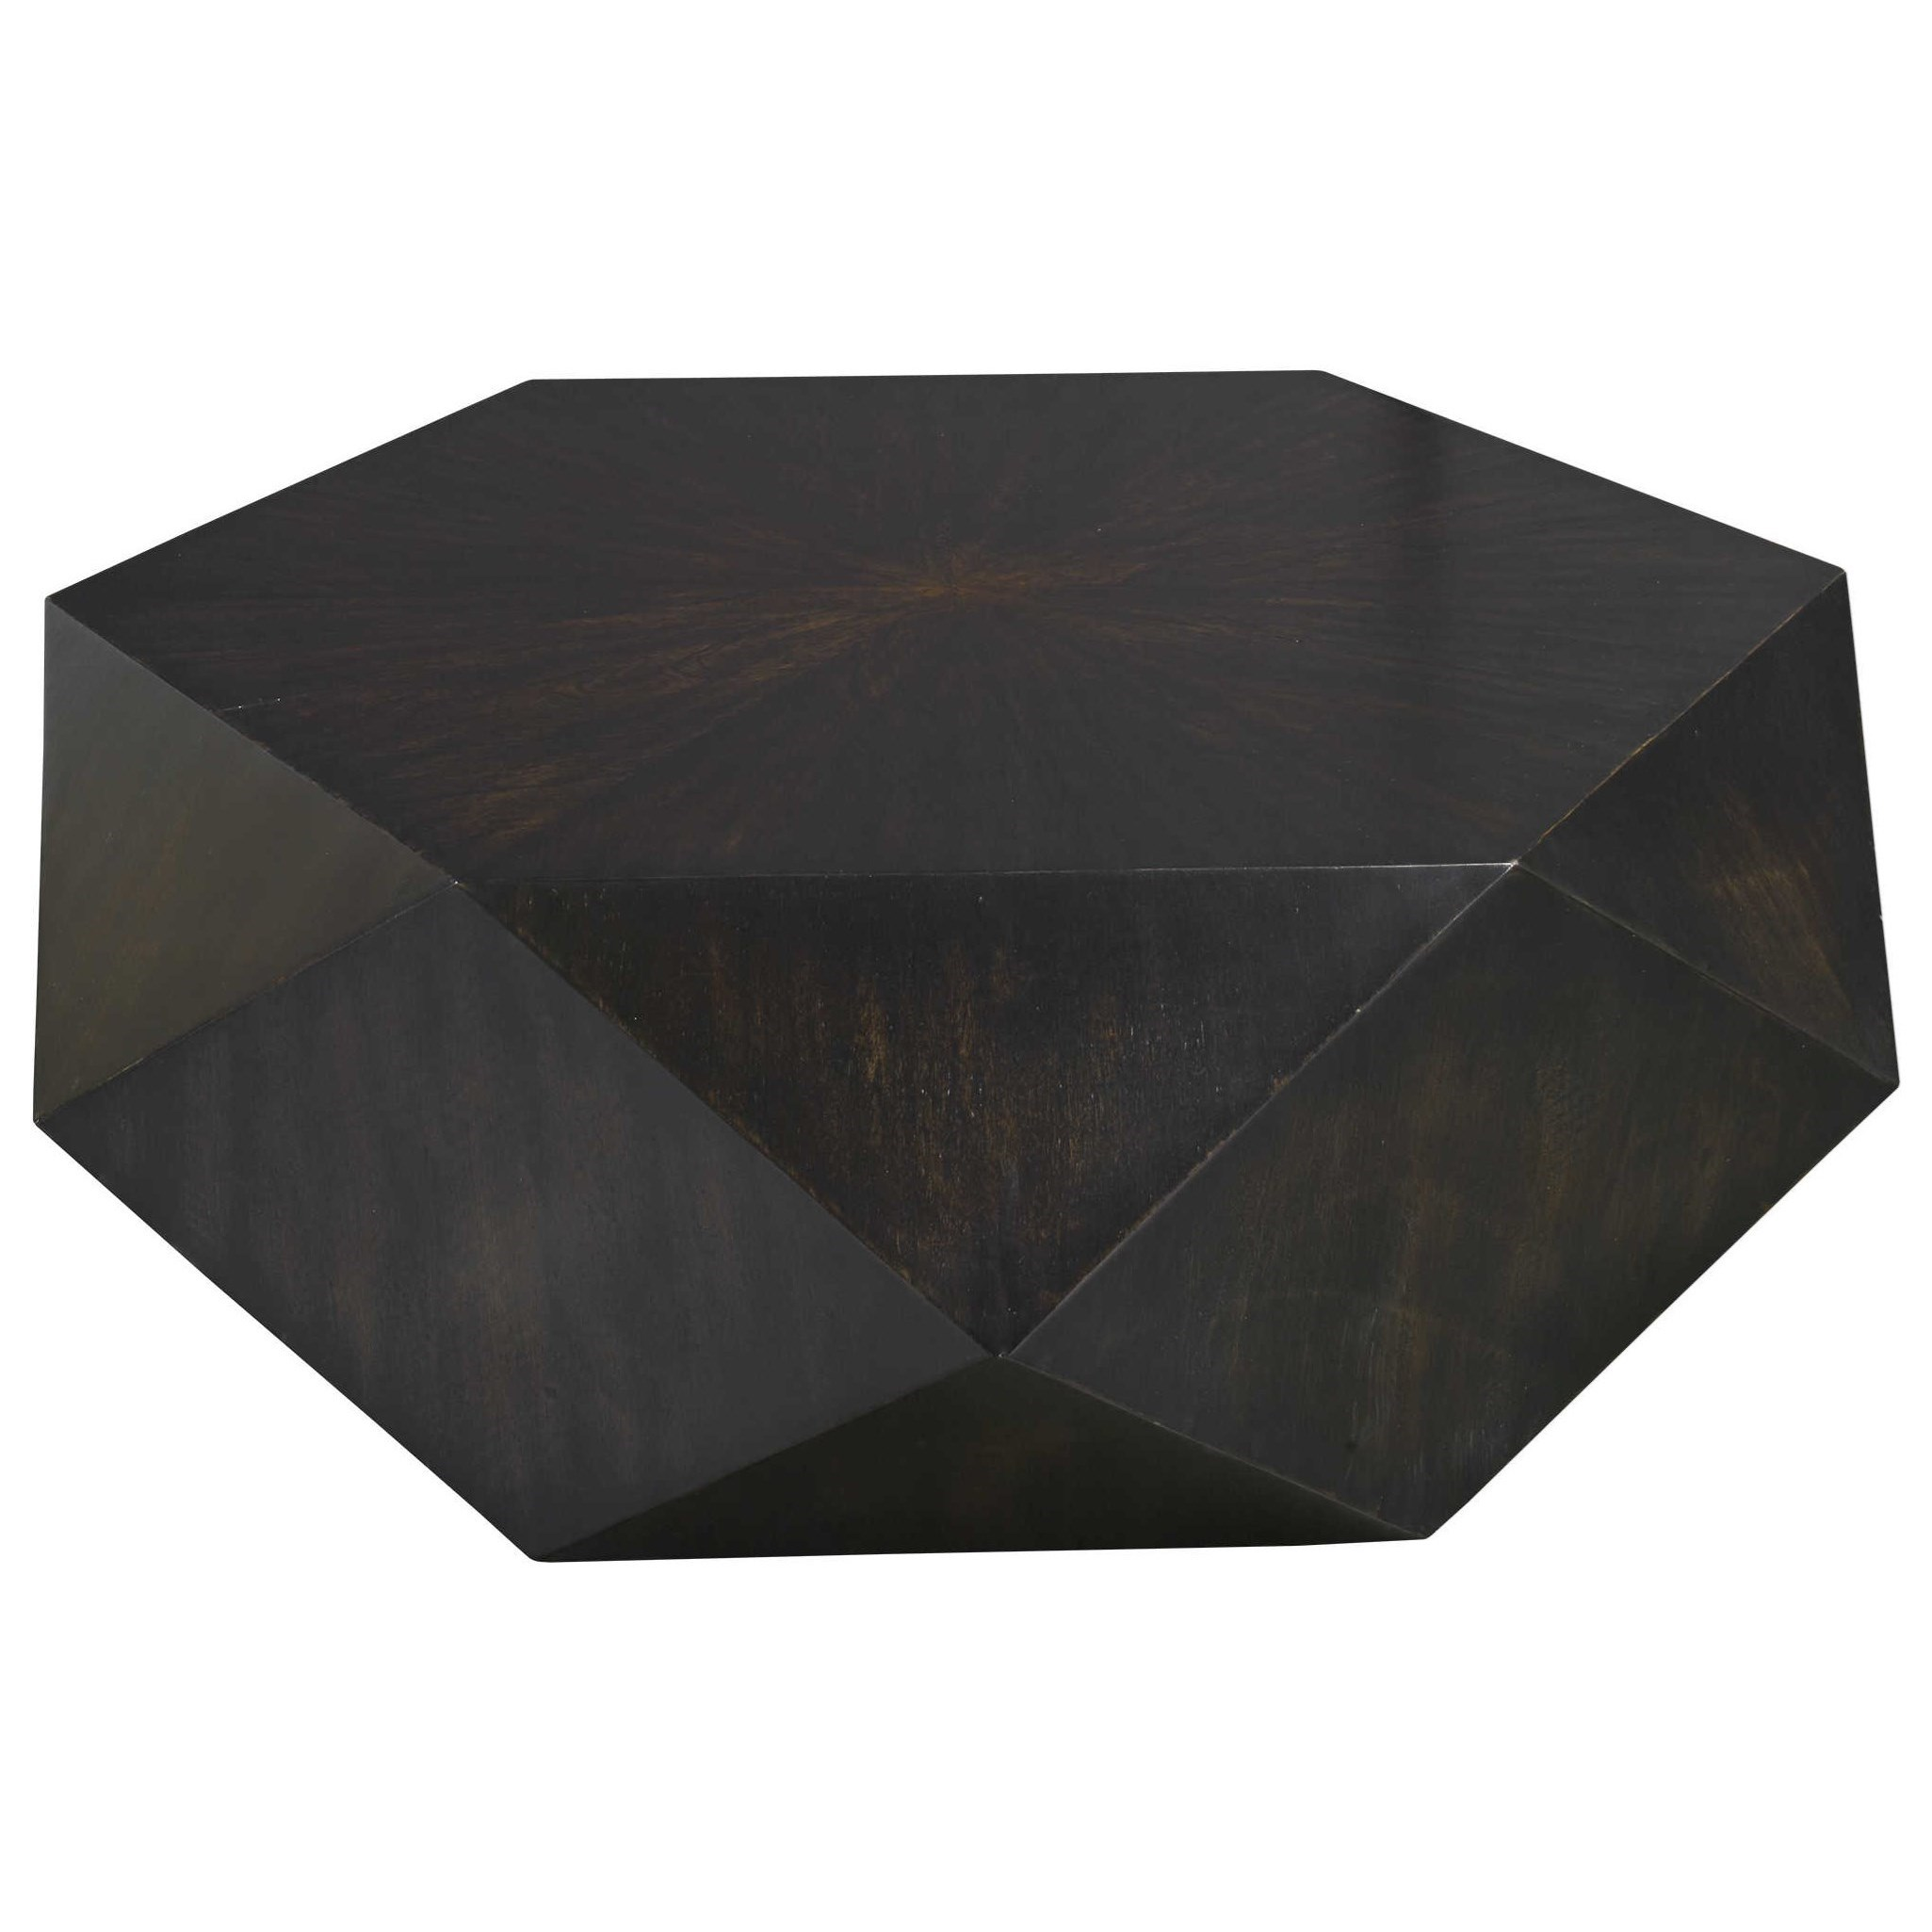 Accent Furniture - Occasional Tables Volker Small Black Coffee Table by Uttermost at Del Sol Furniture